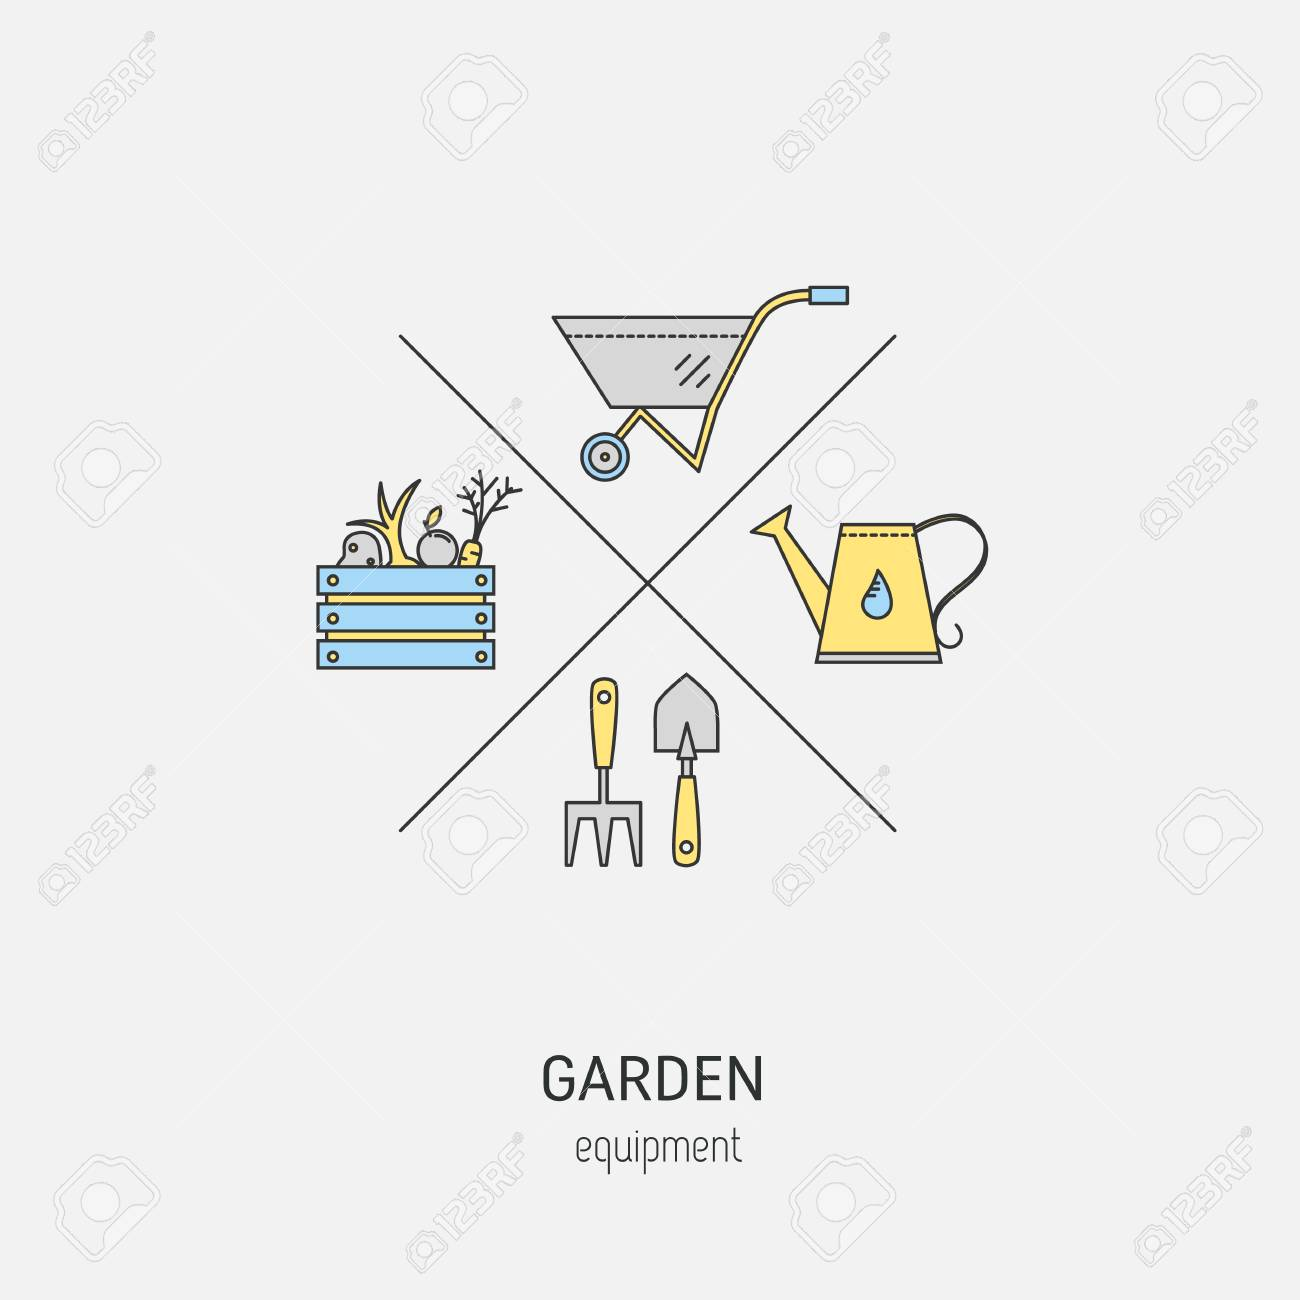 Garden Equipment Flat Line Concept Vector Logo Made In Minimalist Royalty Free Cliparts Vectors And Stock Illustration Image 70081052